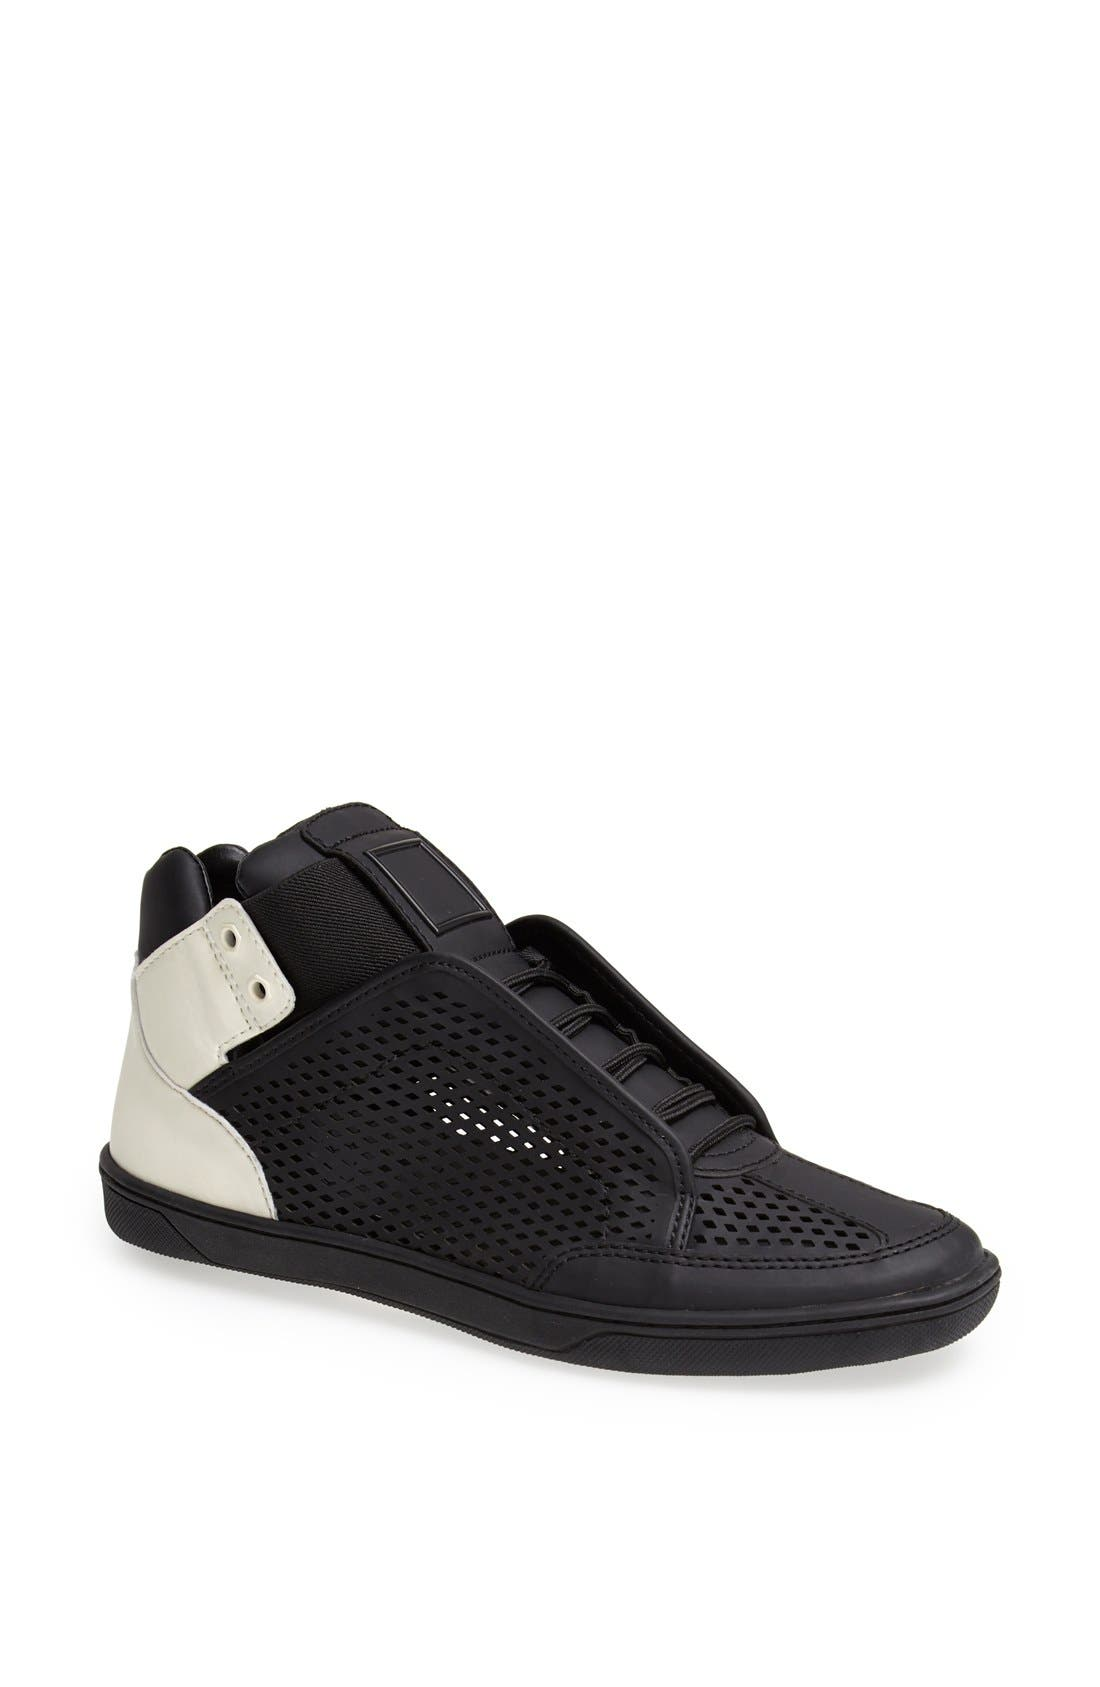 Alternate Image 1 Selected - Dolce Vita 'Vinna' Sneaker